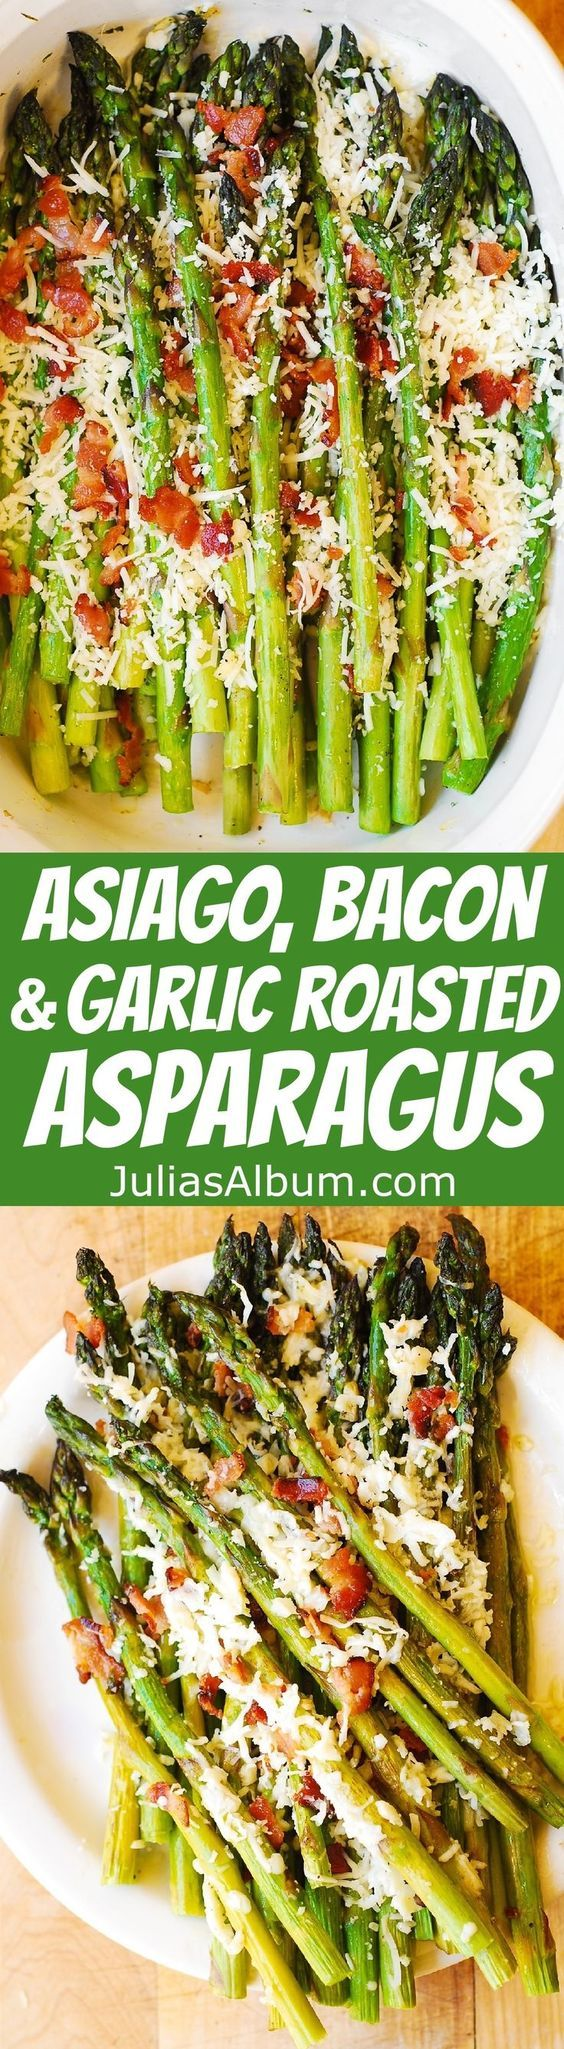 Asiago Cheese, Bacon, and Garlic Roasted Asparagus - THE BEST WAY to cook asparagus! Healthy, gluten free recipe. Perfect side dish or breakfast (along with scrambled or poached eggs).